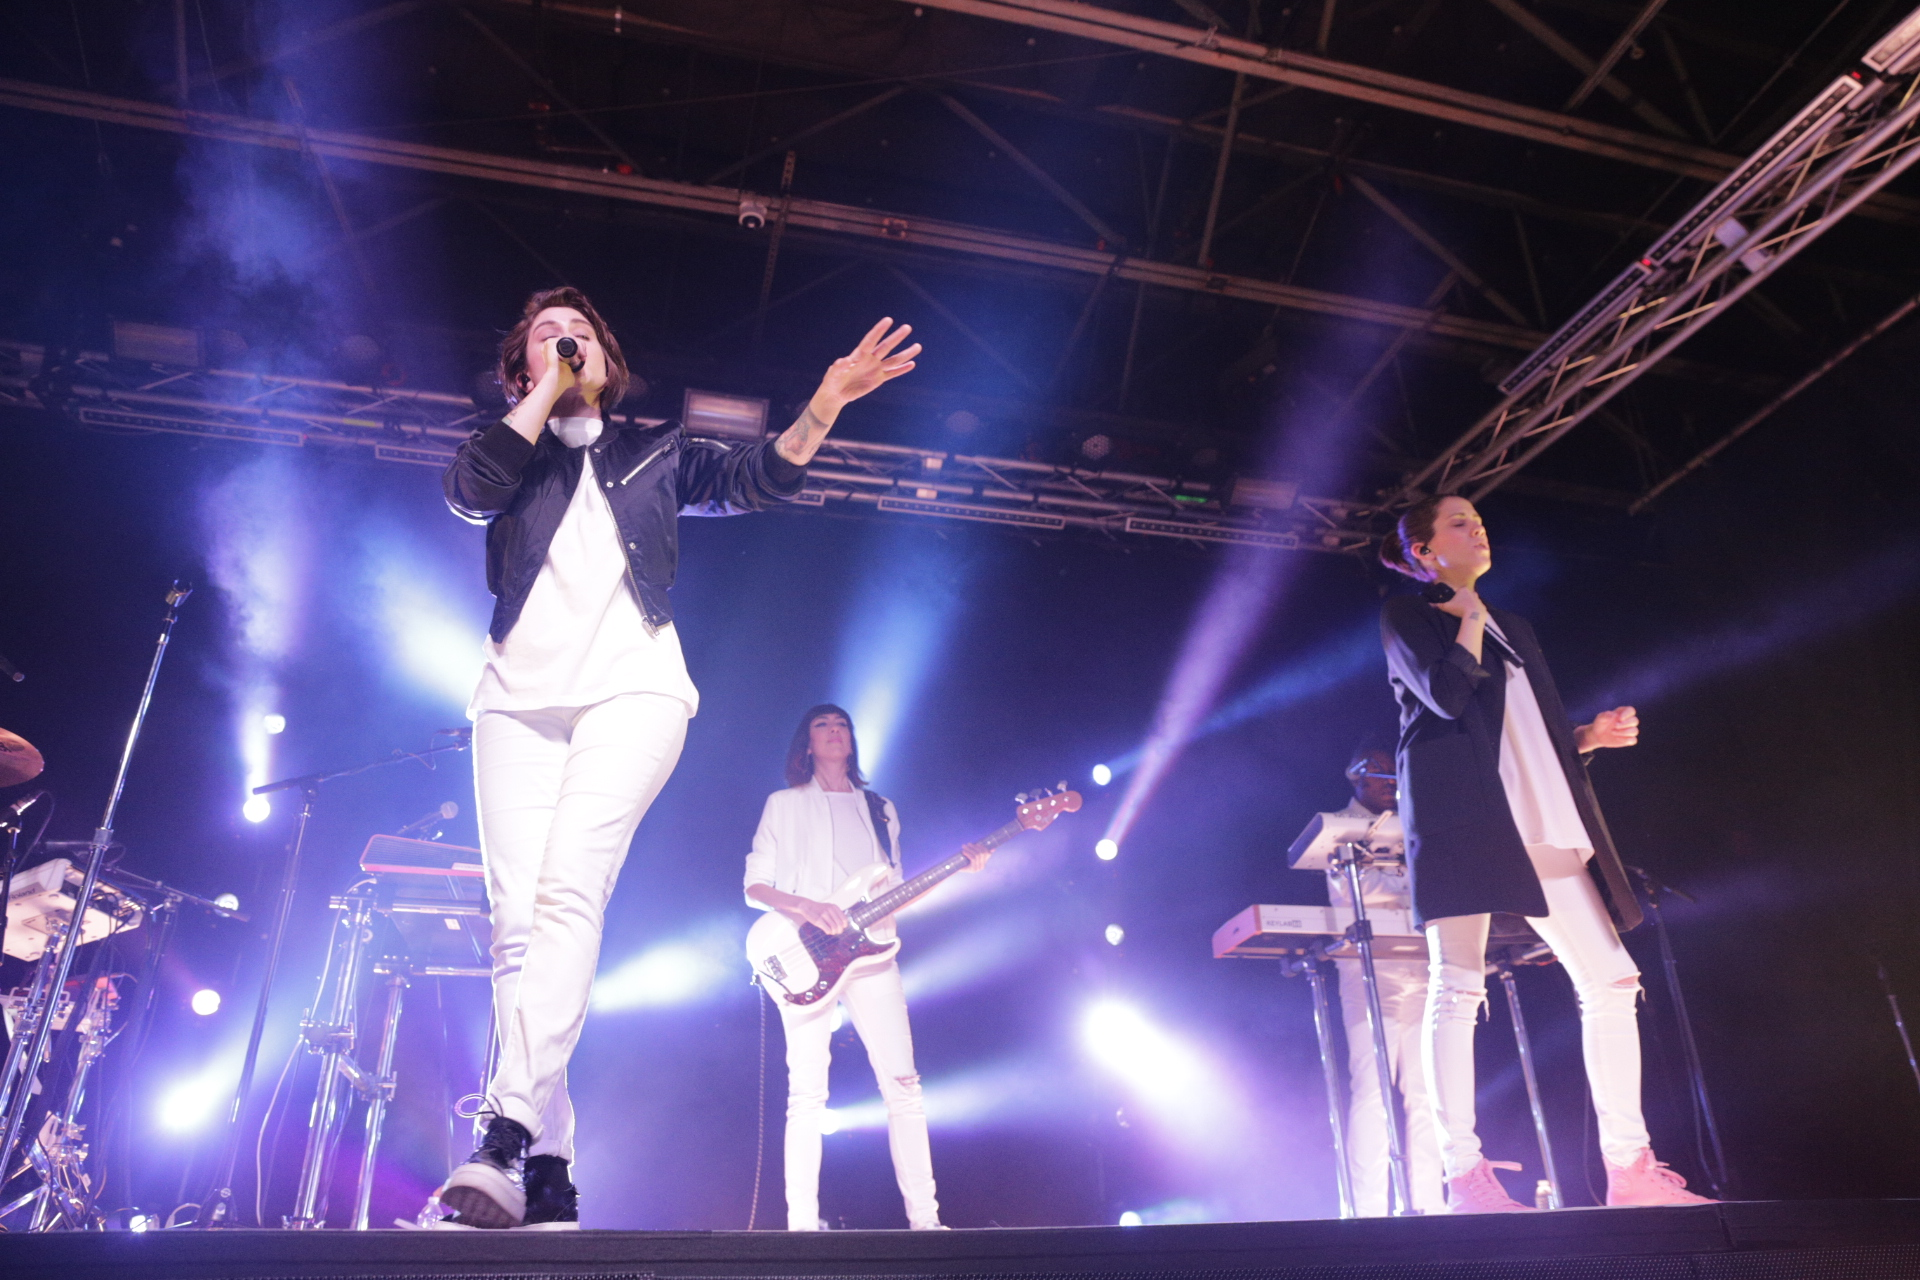 Revamped pop duo Tegan and Sara onstage at In the Venue. Photo: @Lmsorenson